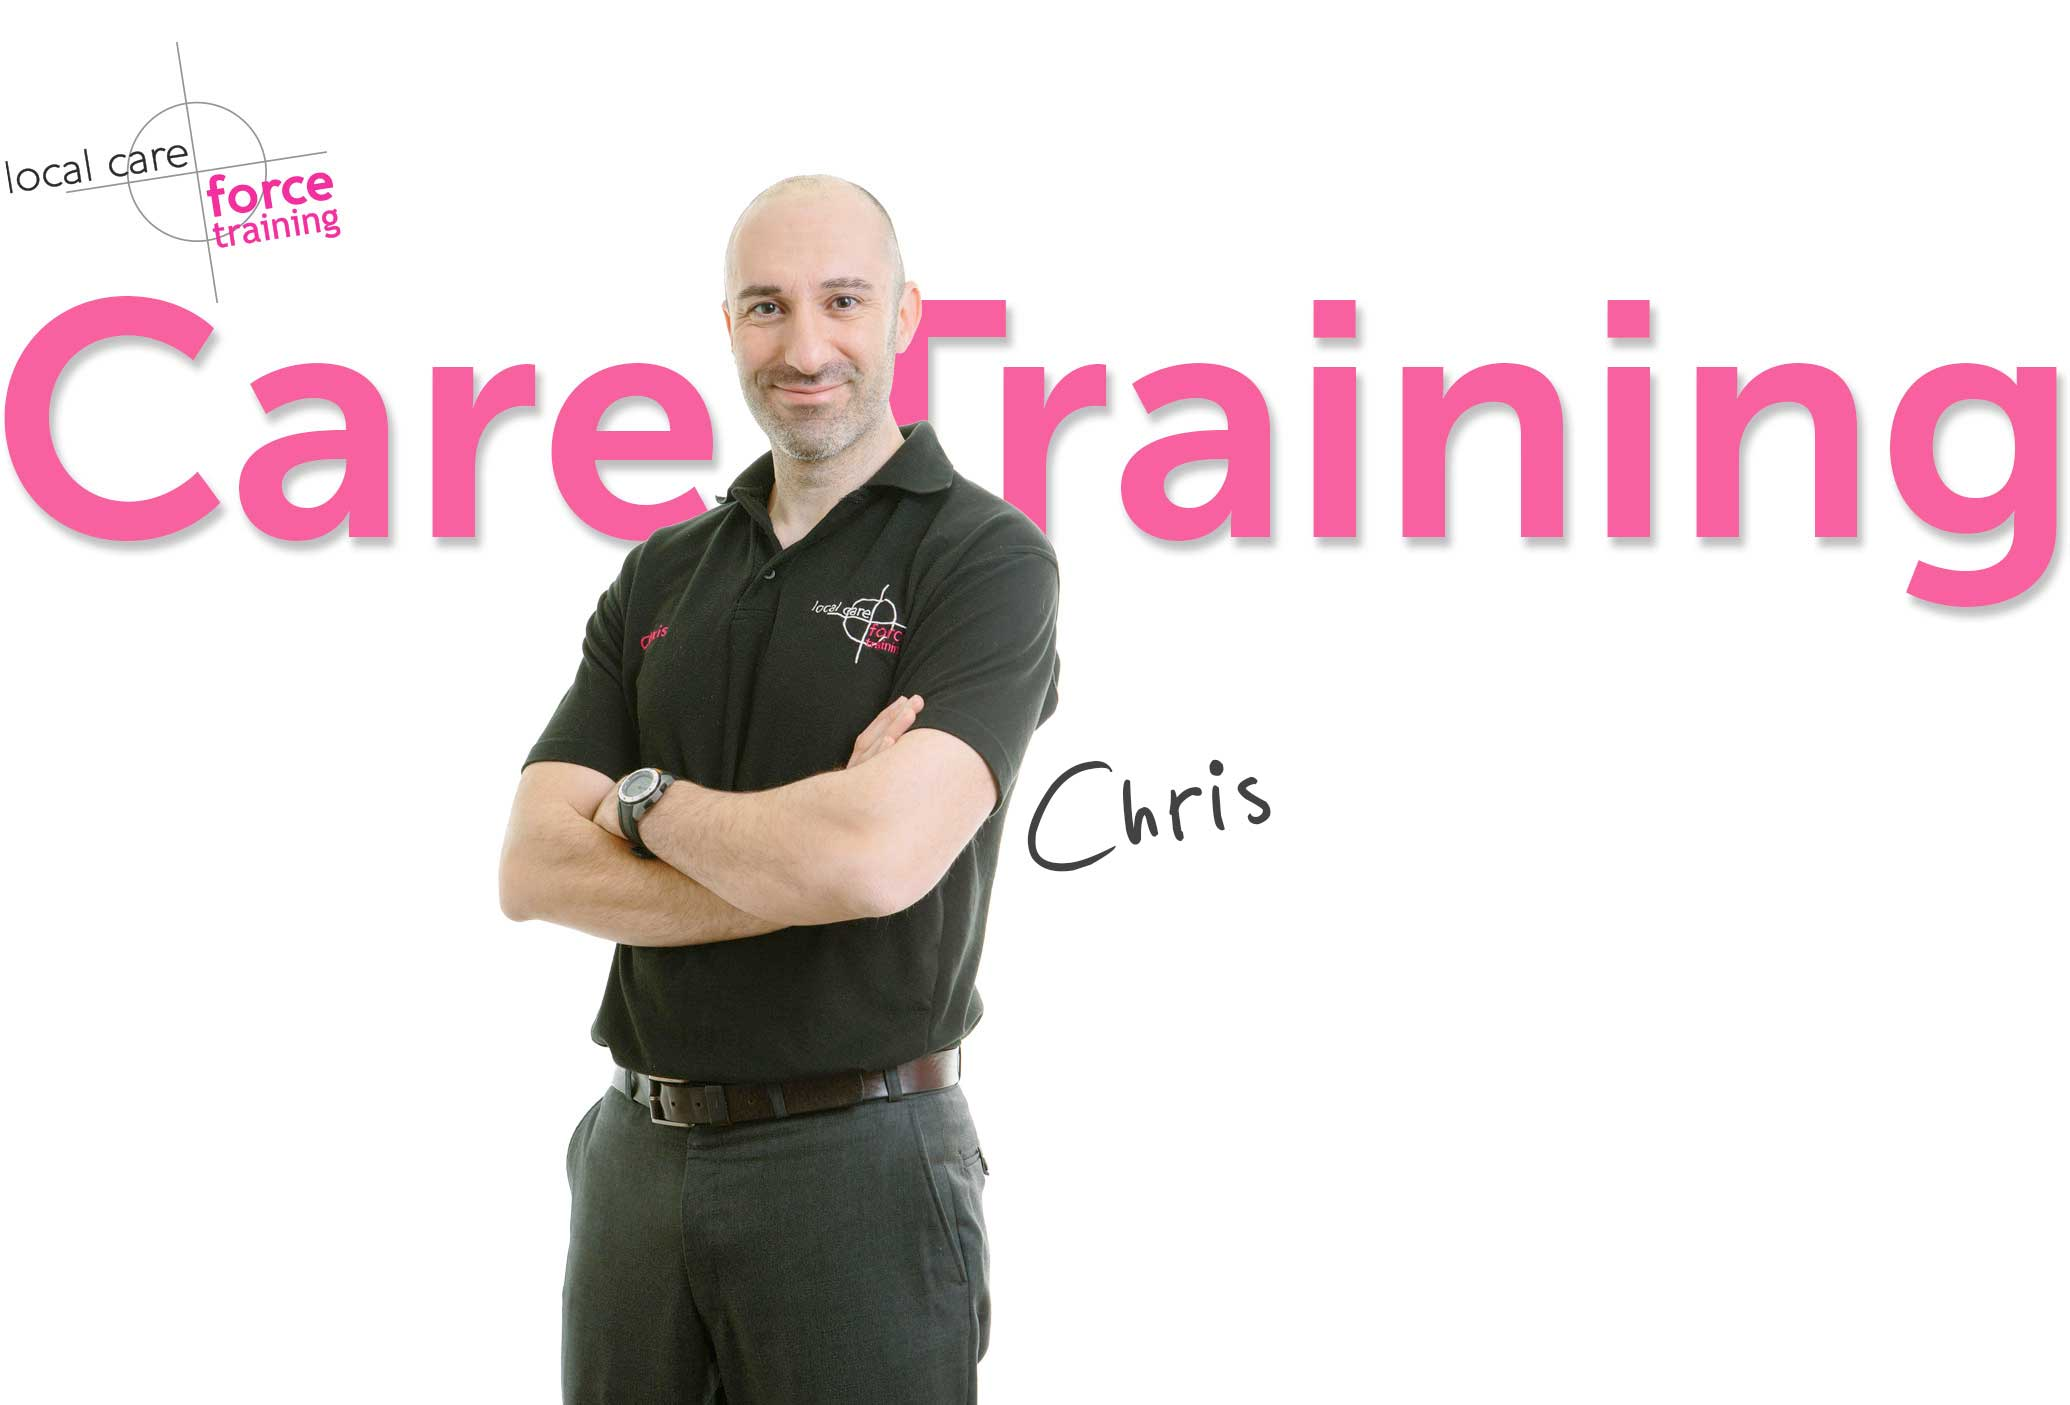 care-training-chris